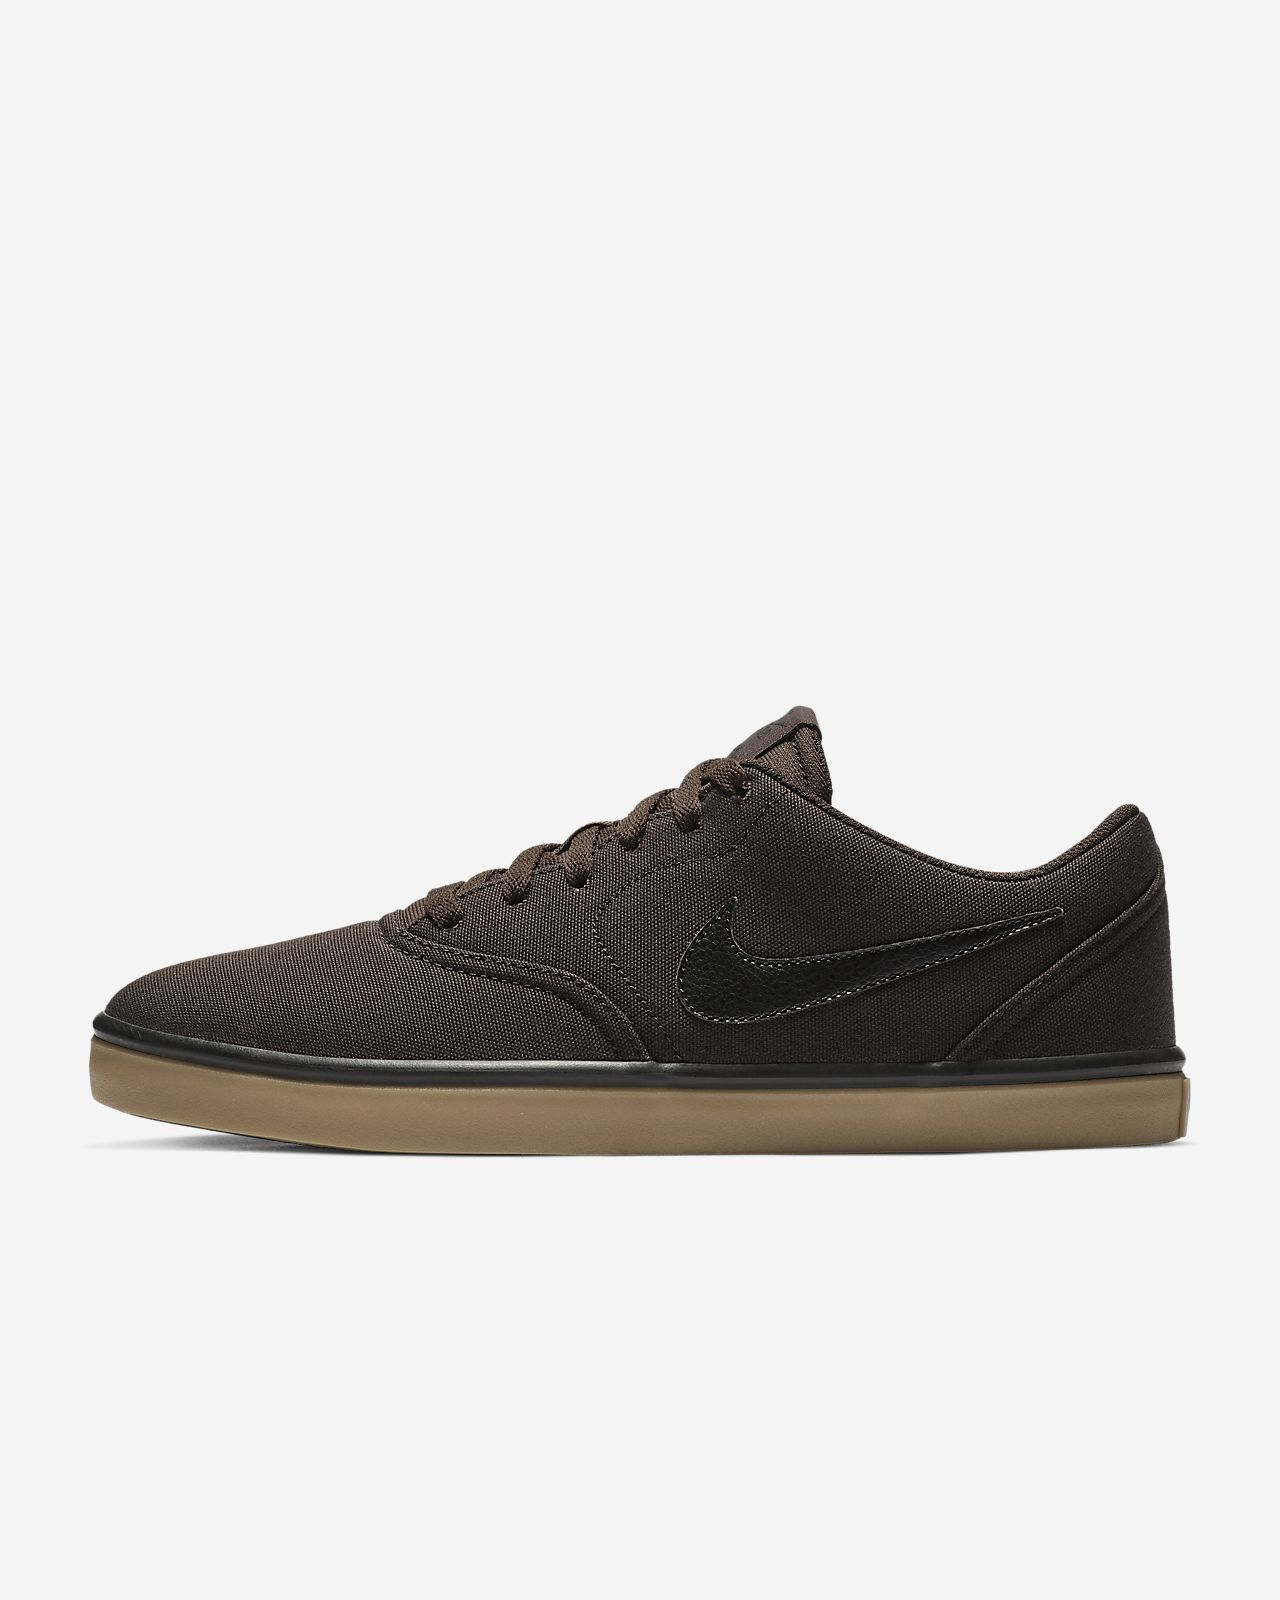 4f3e76609644 Nike SB Check Solarsoft Canvas Men s Skateboarding Shoe. Nike.com LU